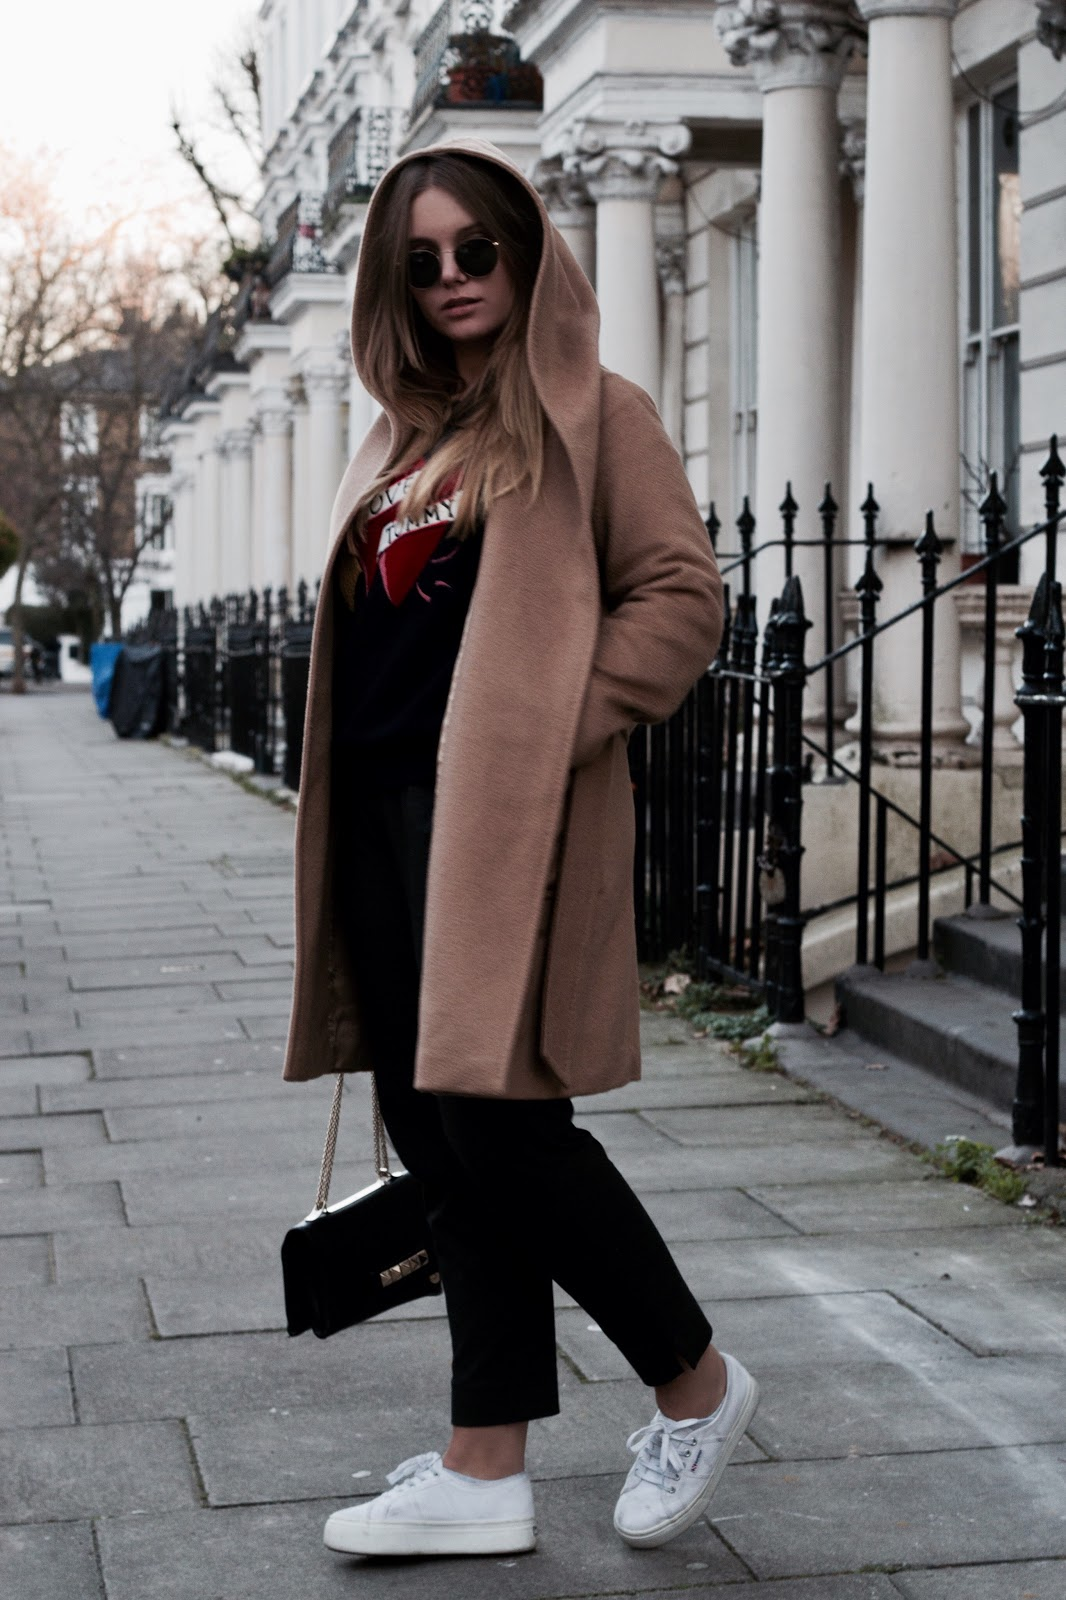 blogger, blog, blogpost, fashion, dominique candido, outfit, deau, london, city trip, max mara, h&m, ray ban, valentino, tommy hilfiger, superga,